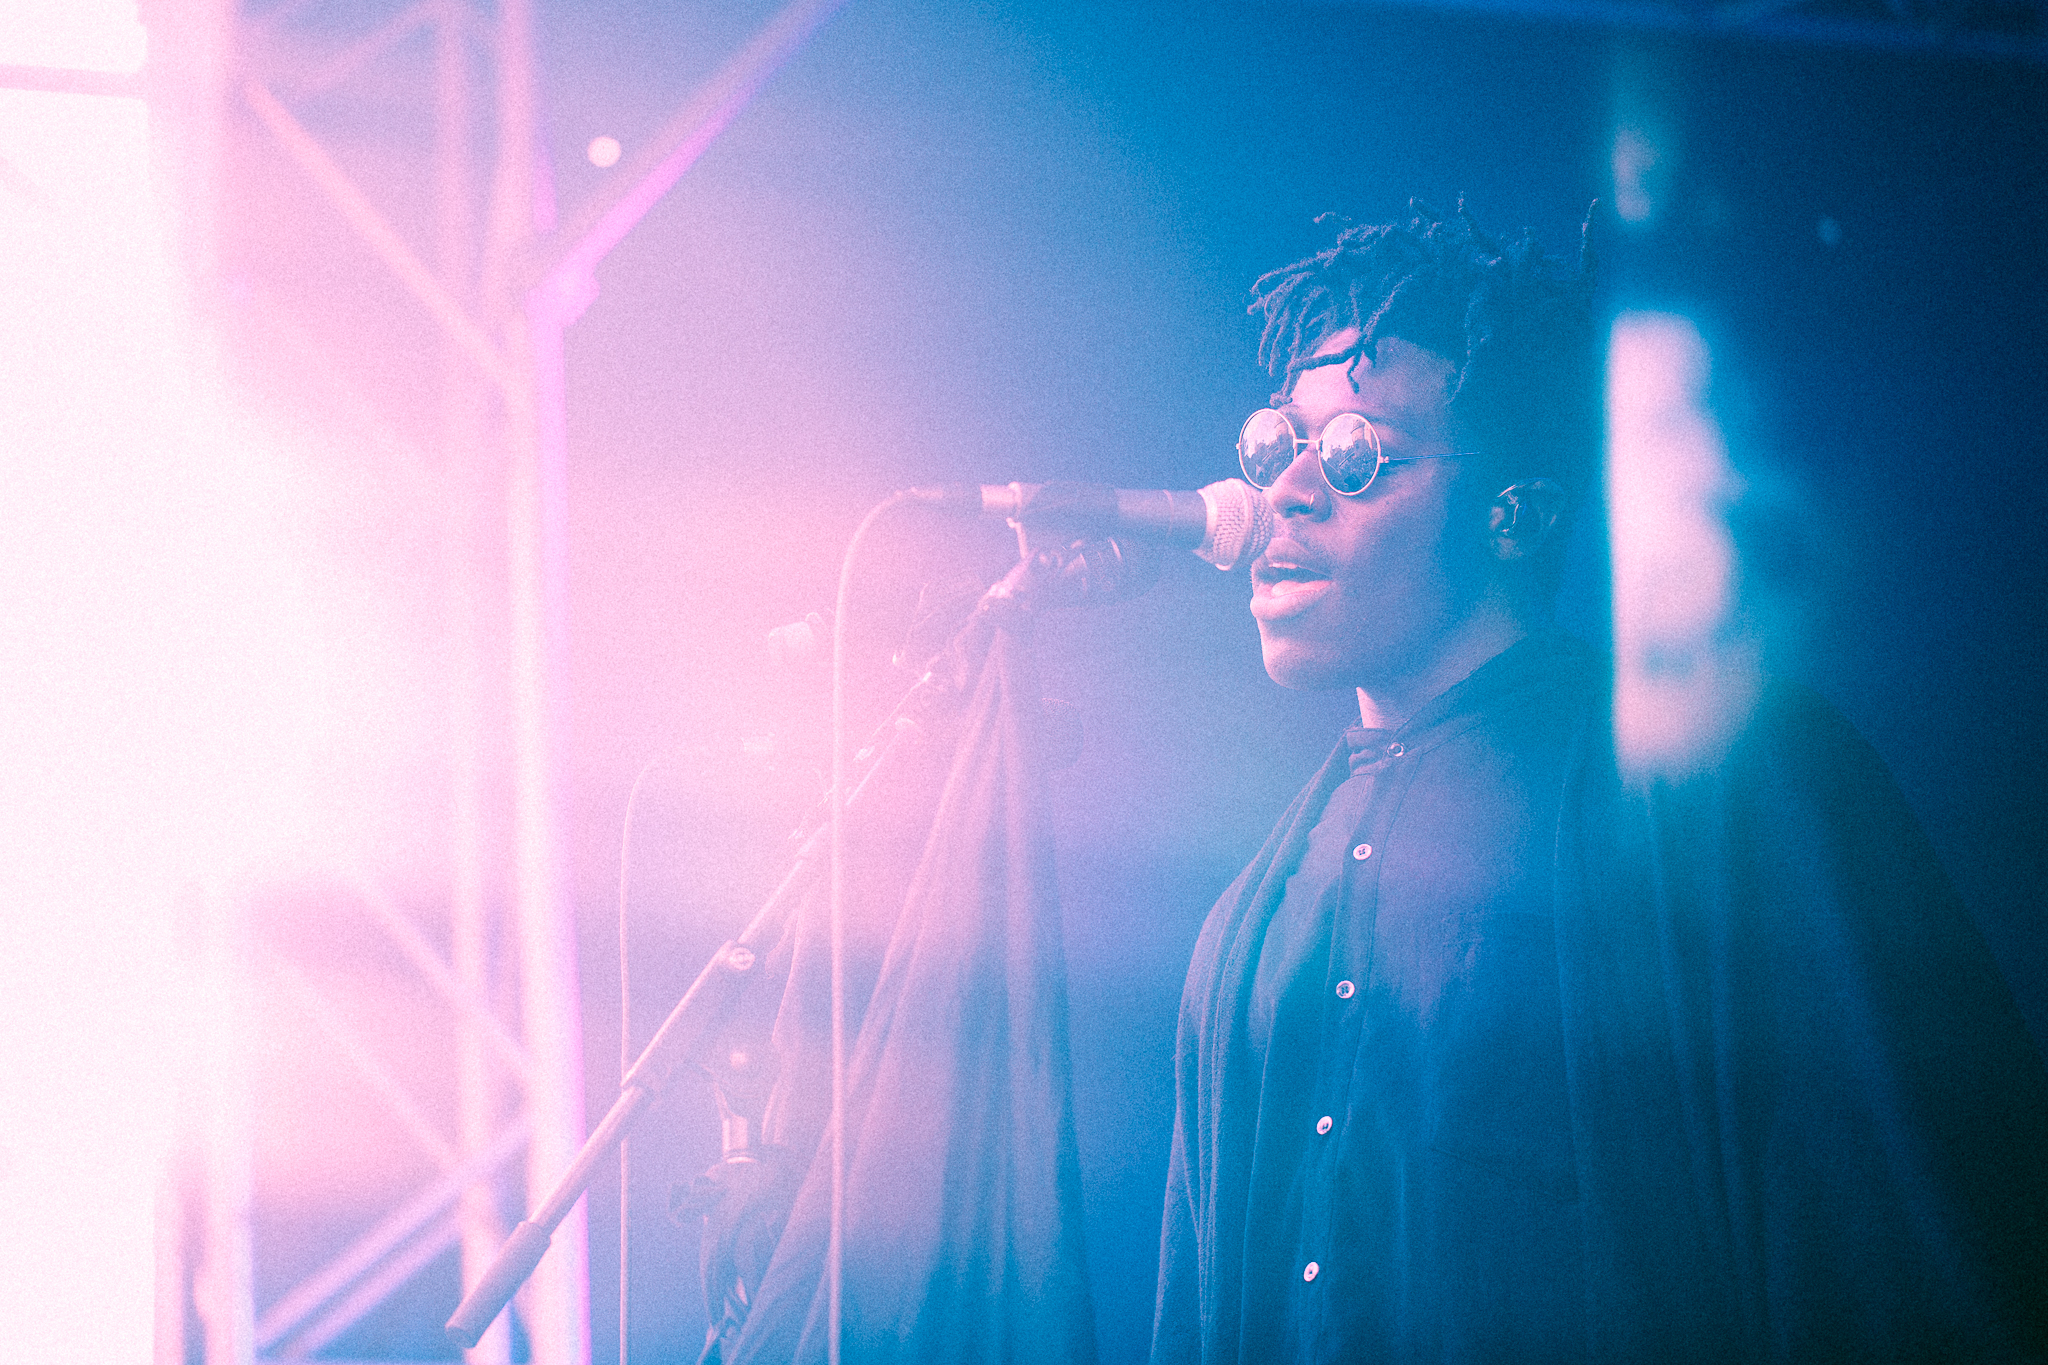 05.02.2018  Moses Sumney. Another one from yesterday at Laneway.